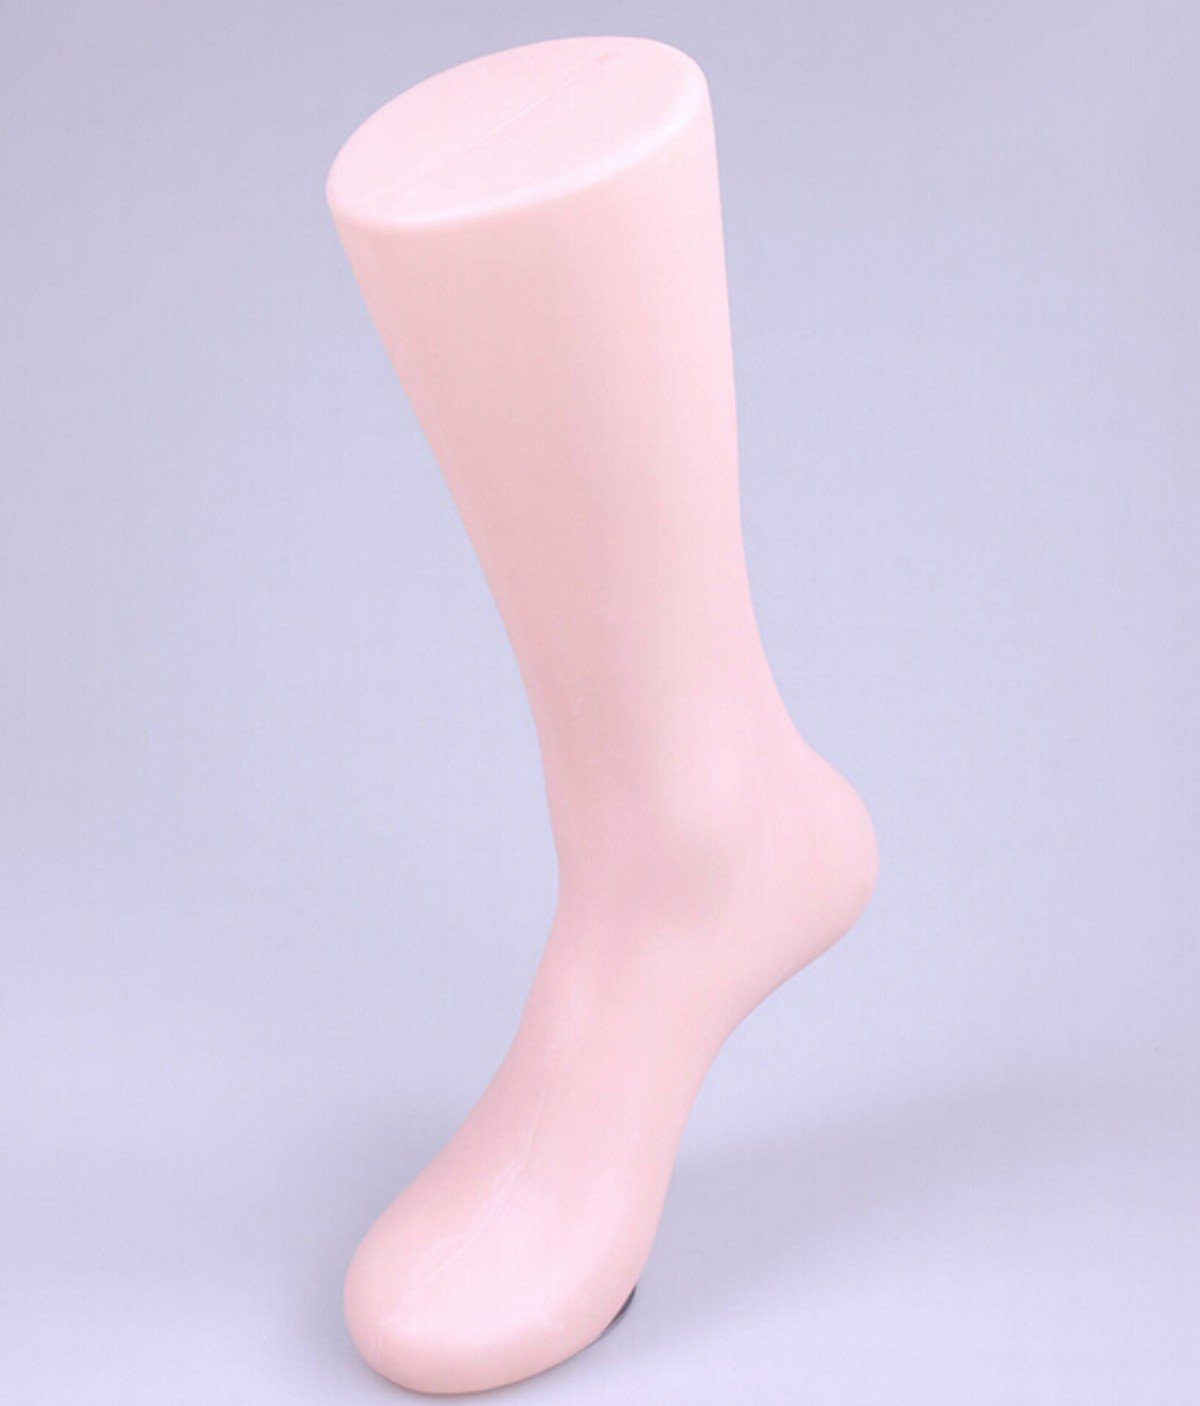 1 Plastic Male Mannequin Right Foot Magnetic Bottom , Mannequin Legs Feet with Magnet , For Sox/Sock Display